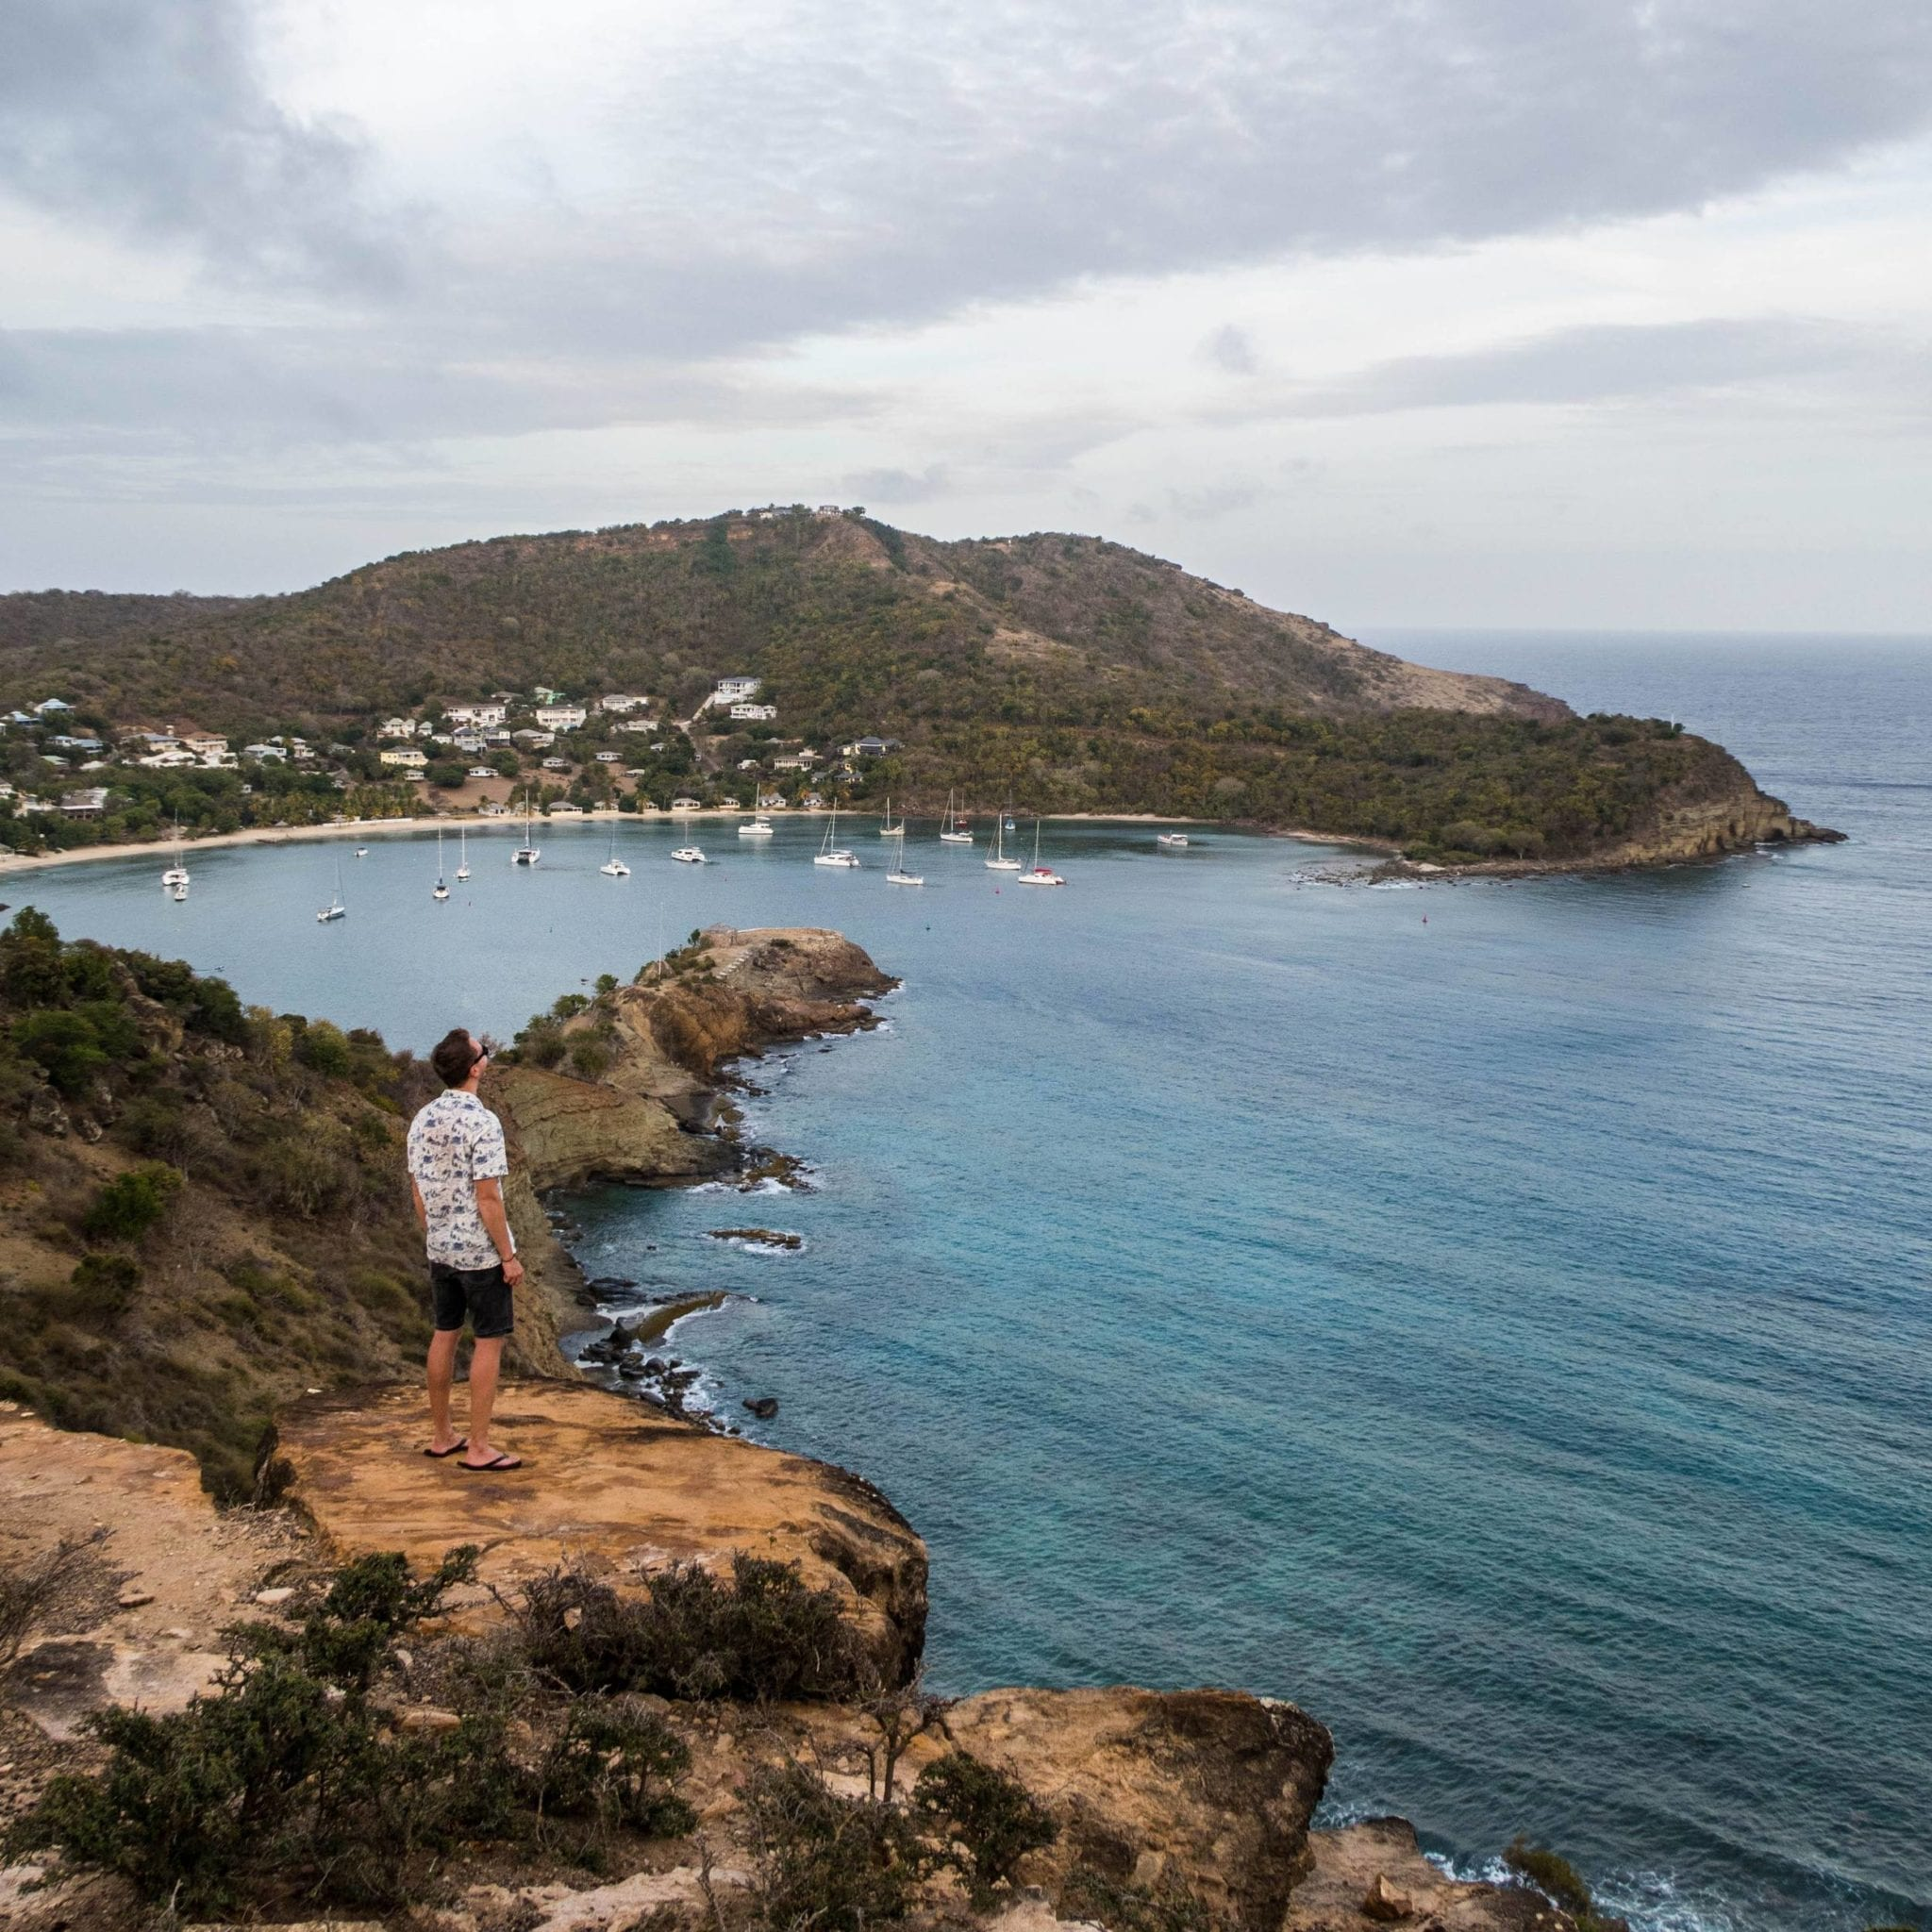 Patrick standing on the edge of a cliff, looking on to the English Harbour in Antigua.